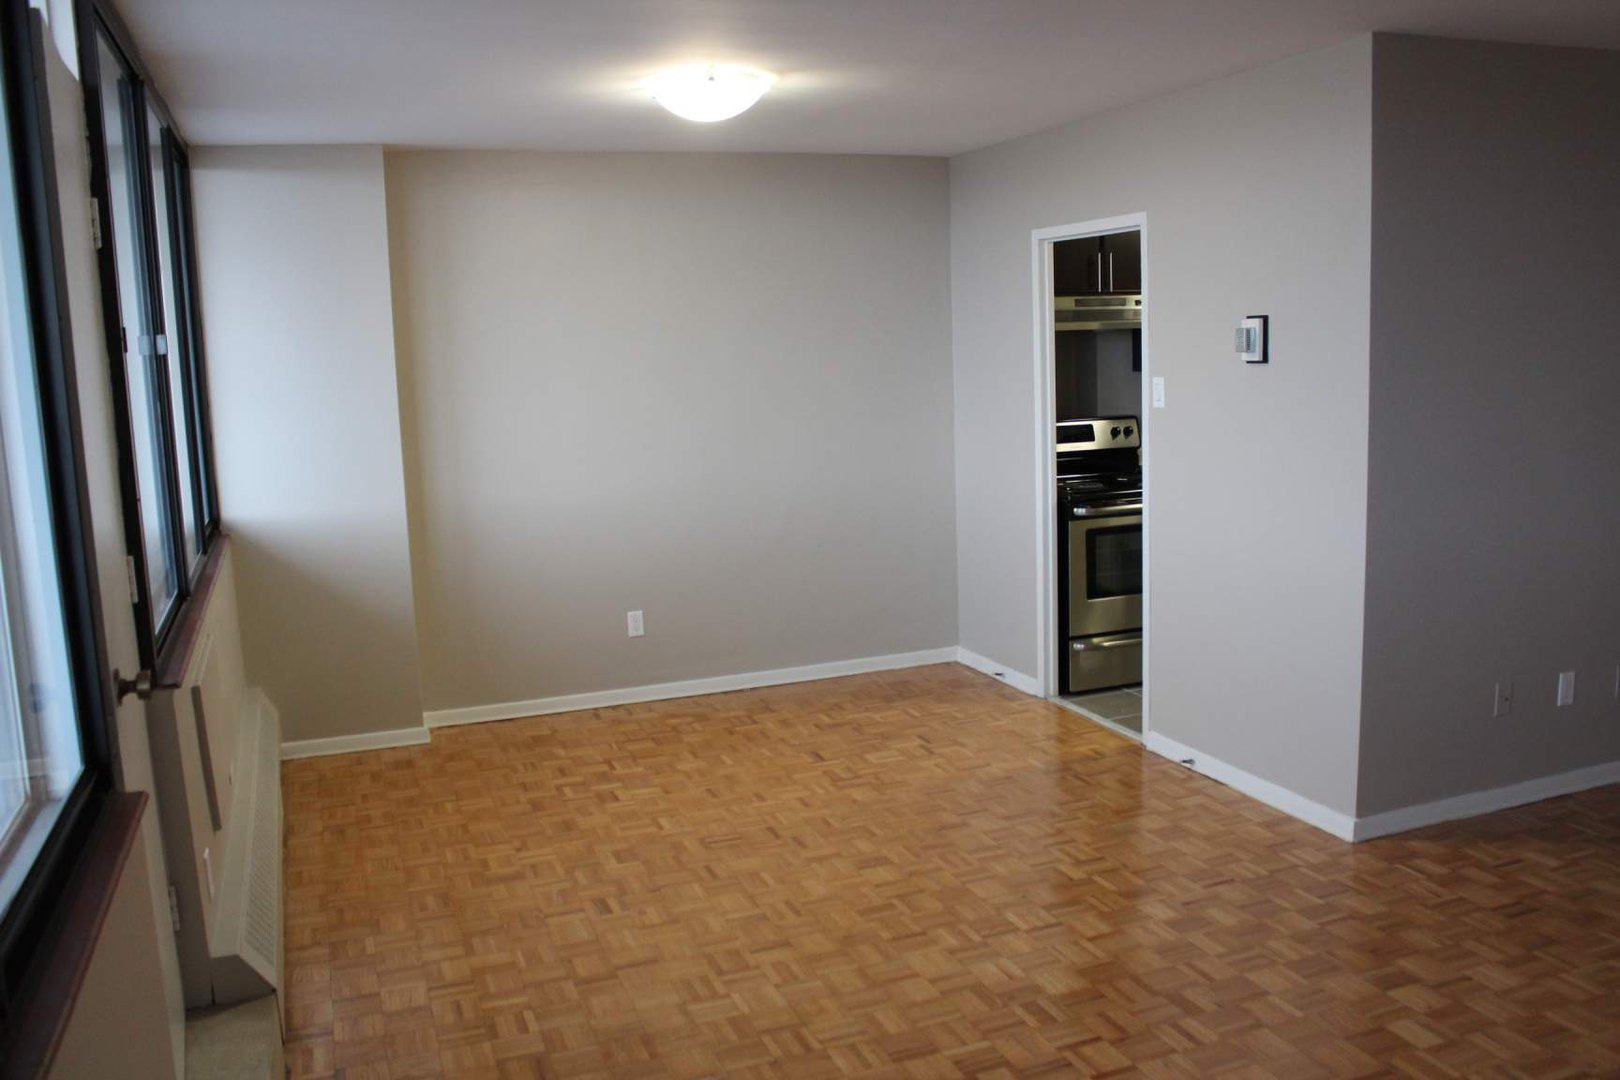 Apartment for rent at 55 Livingston Road, Scarborough, ON.